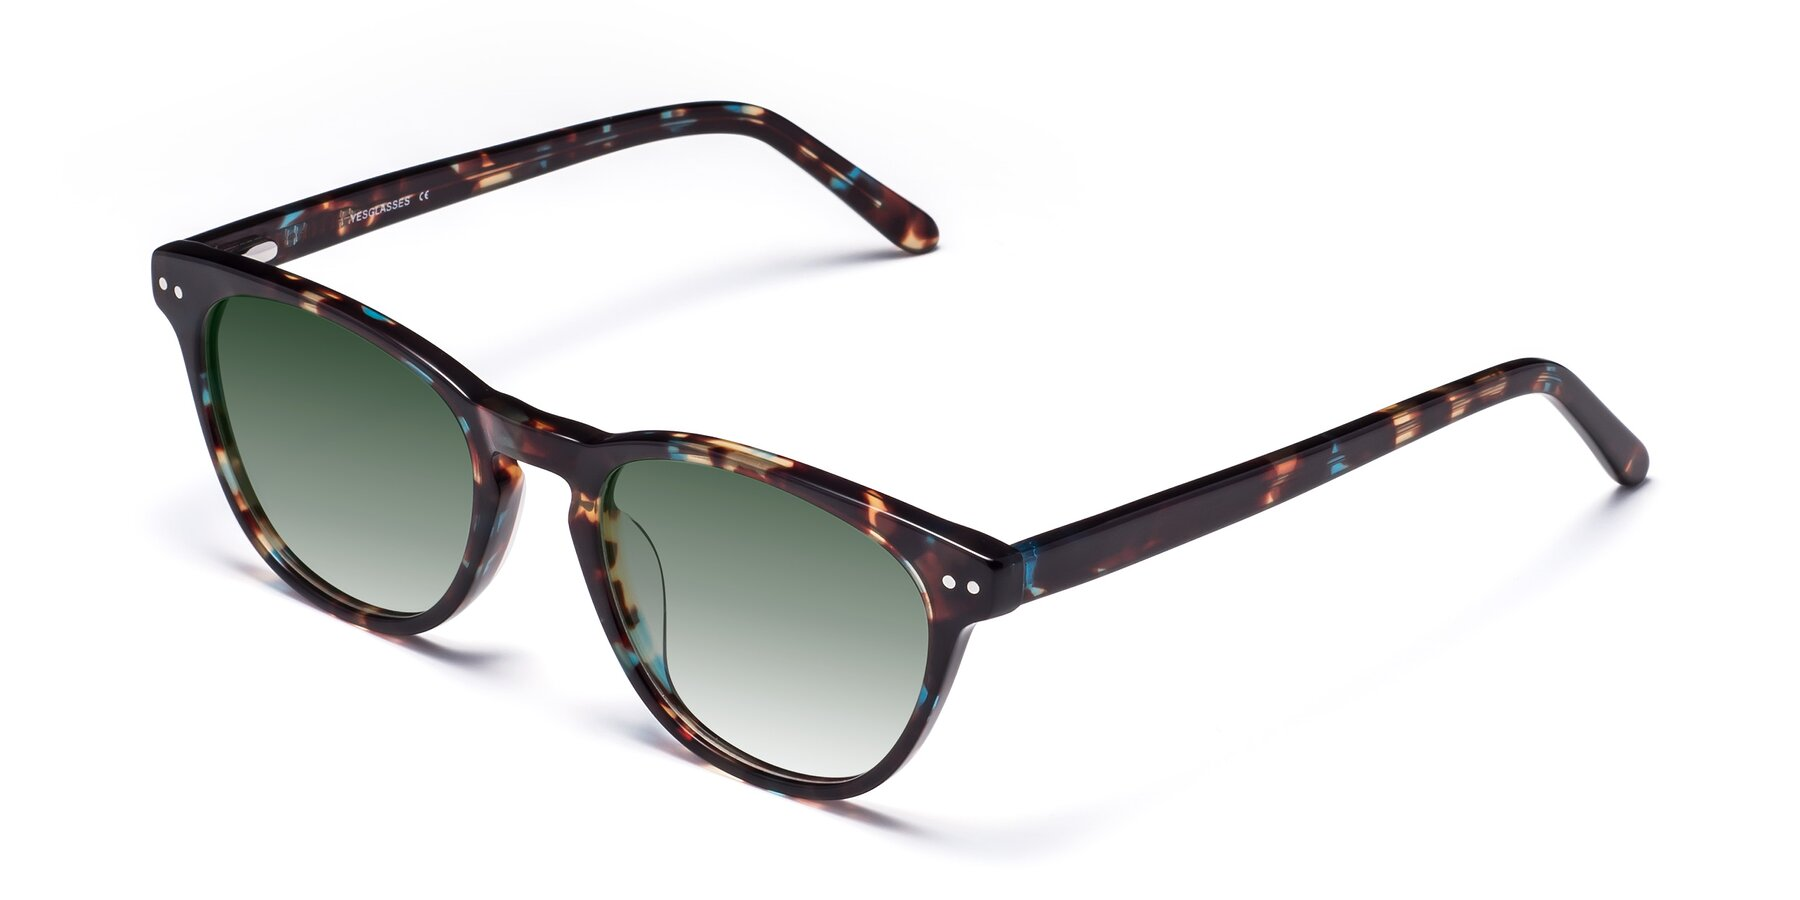 Angle of Blaze in Tortoise-Blue with Green Gradient Lenses